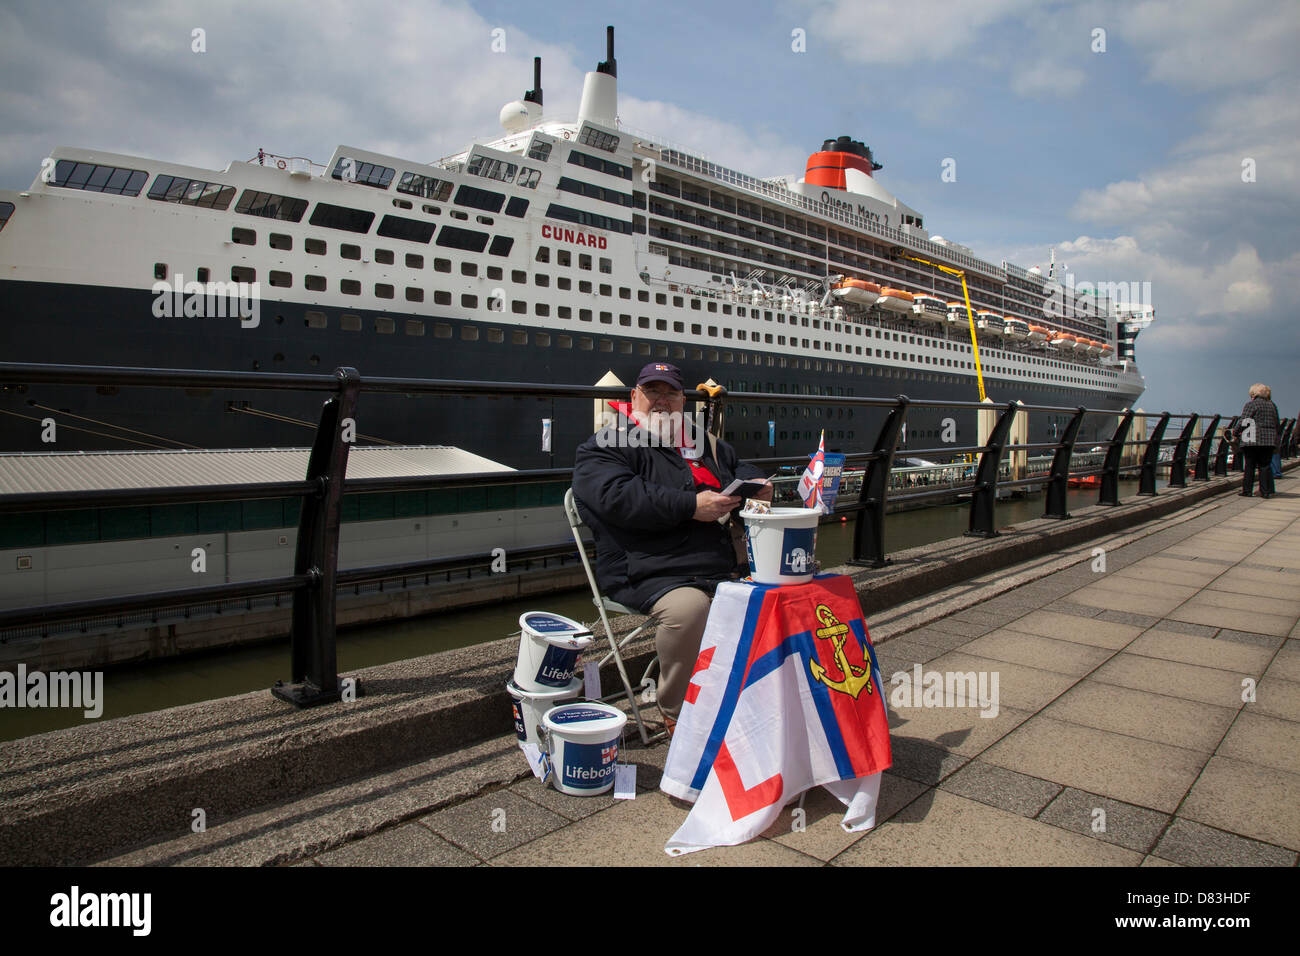 Liverpool, UK 17th May, 2013. Ray Roberts, from Edgehill collecting for RNLI Coastguard charity at the Cruise Liner - Stock Image